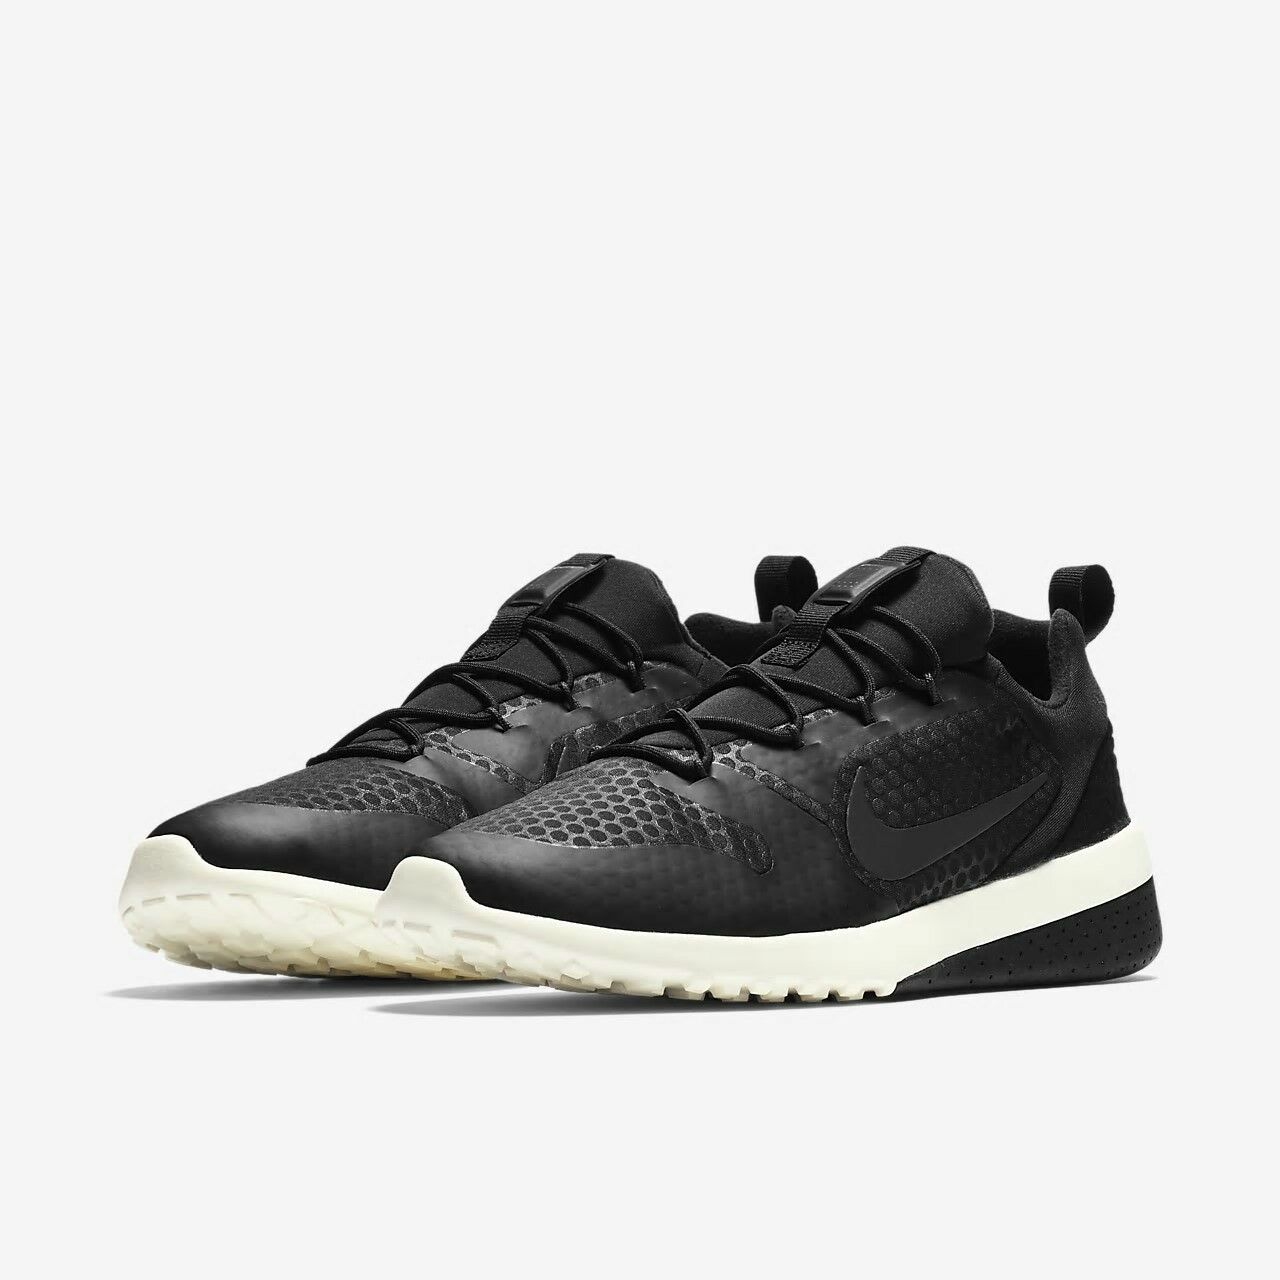 946259c919cd5 New Nike CK Racer Shoes-Size 11-Black obqjje3918-Athletic Shoes ...